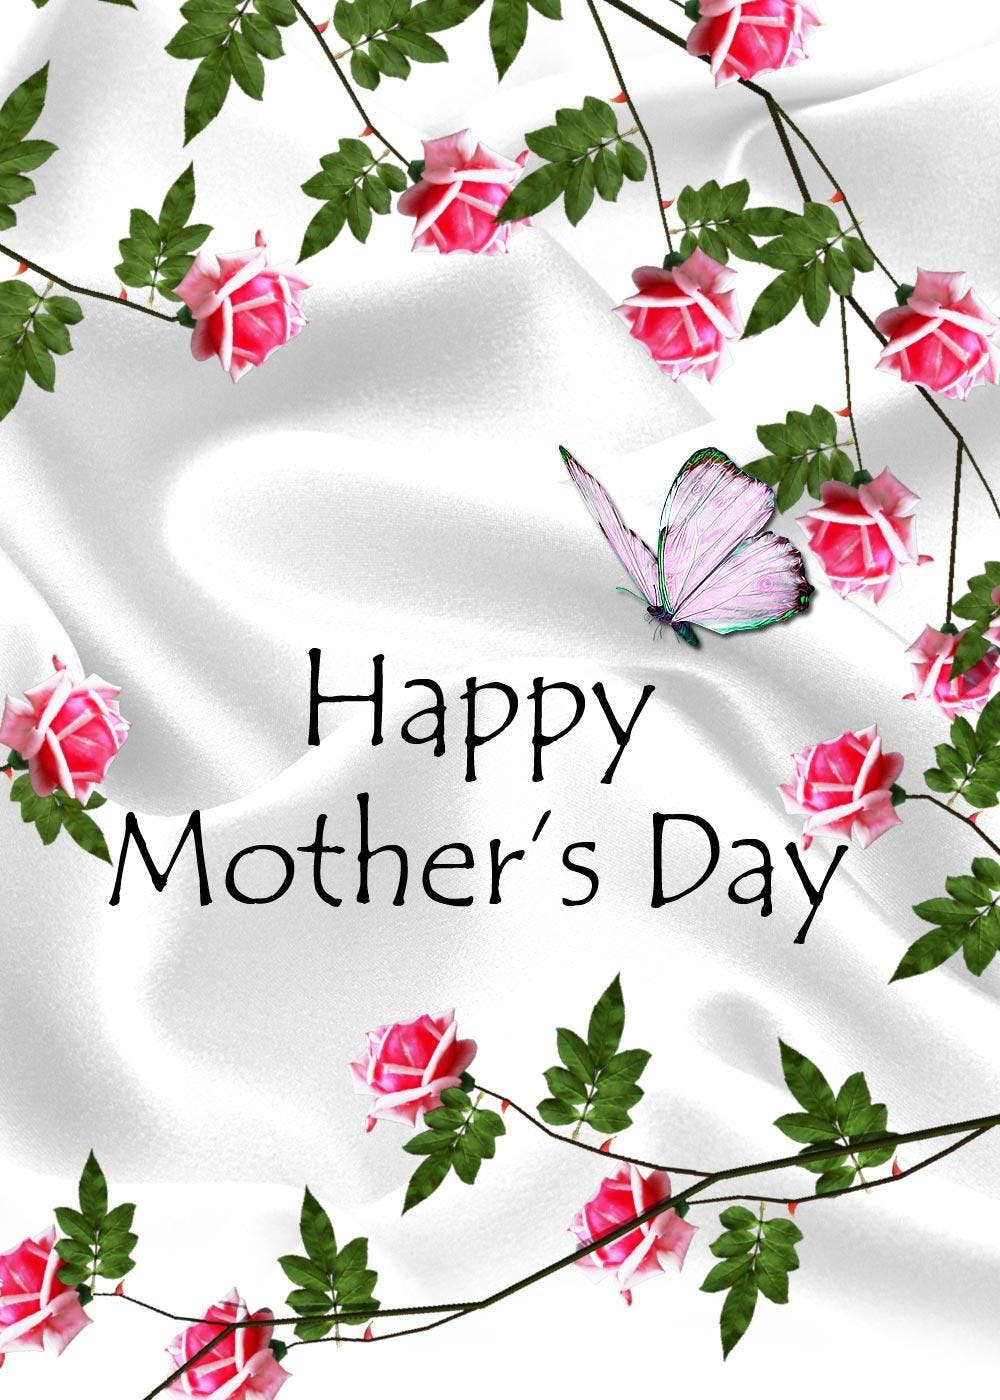 images of happy mother's day - HD 1000×1400